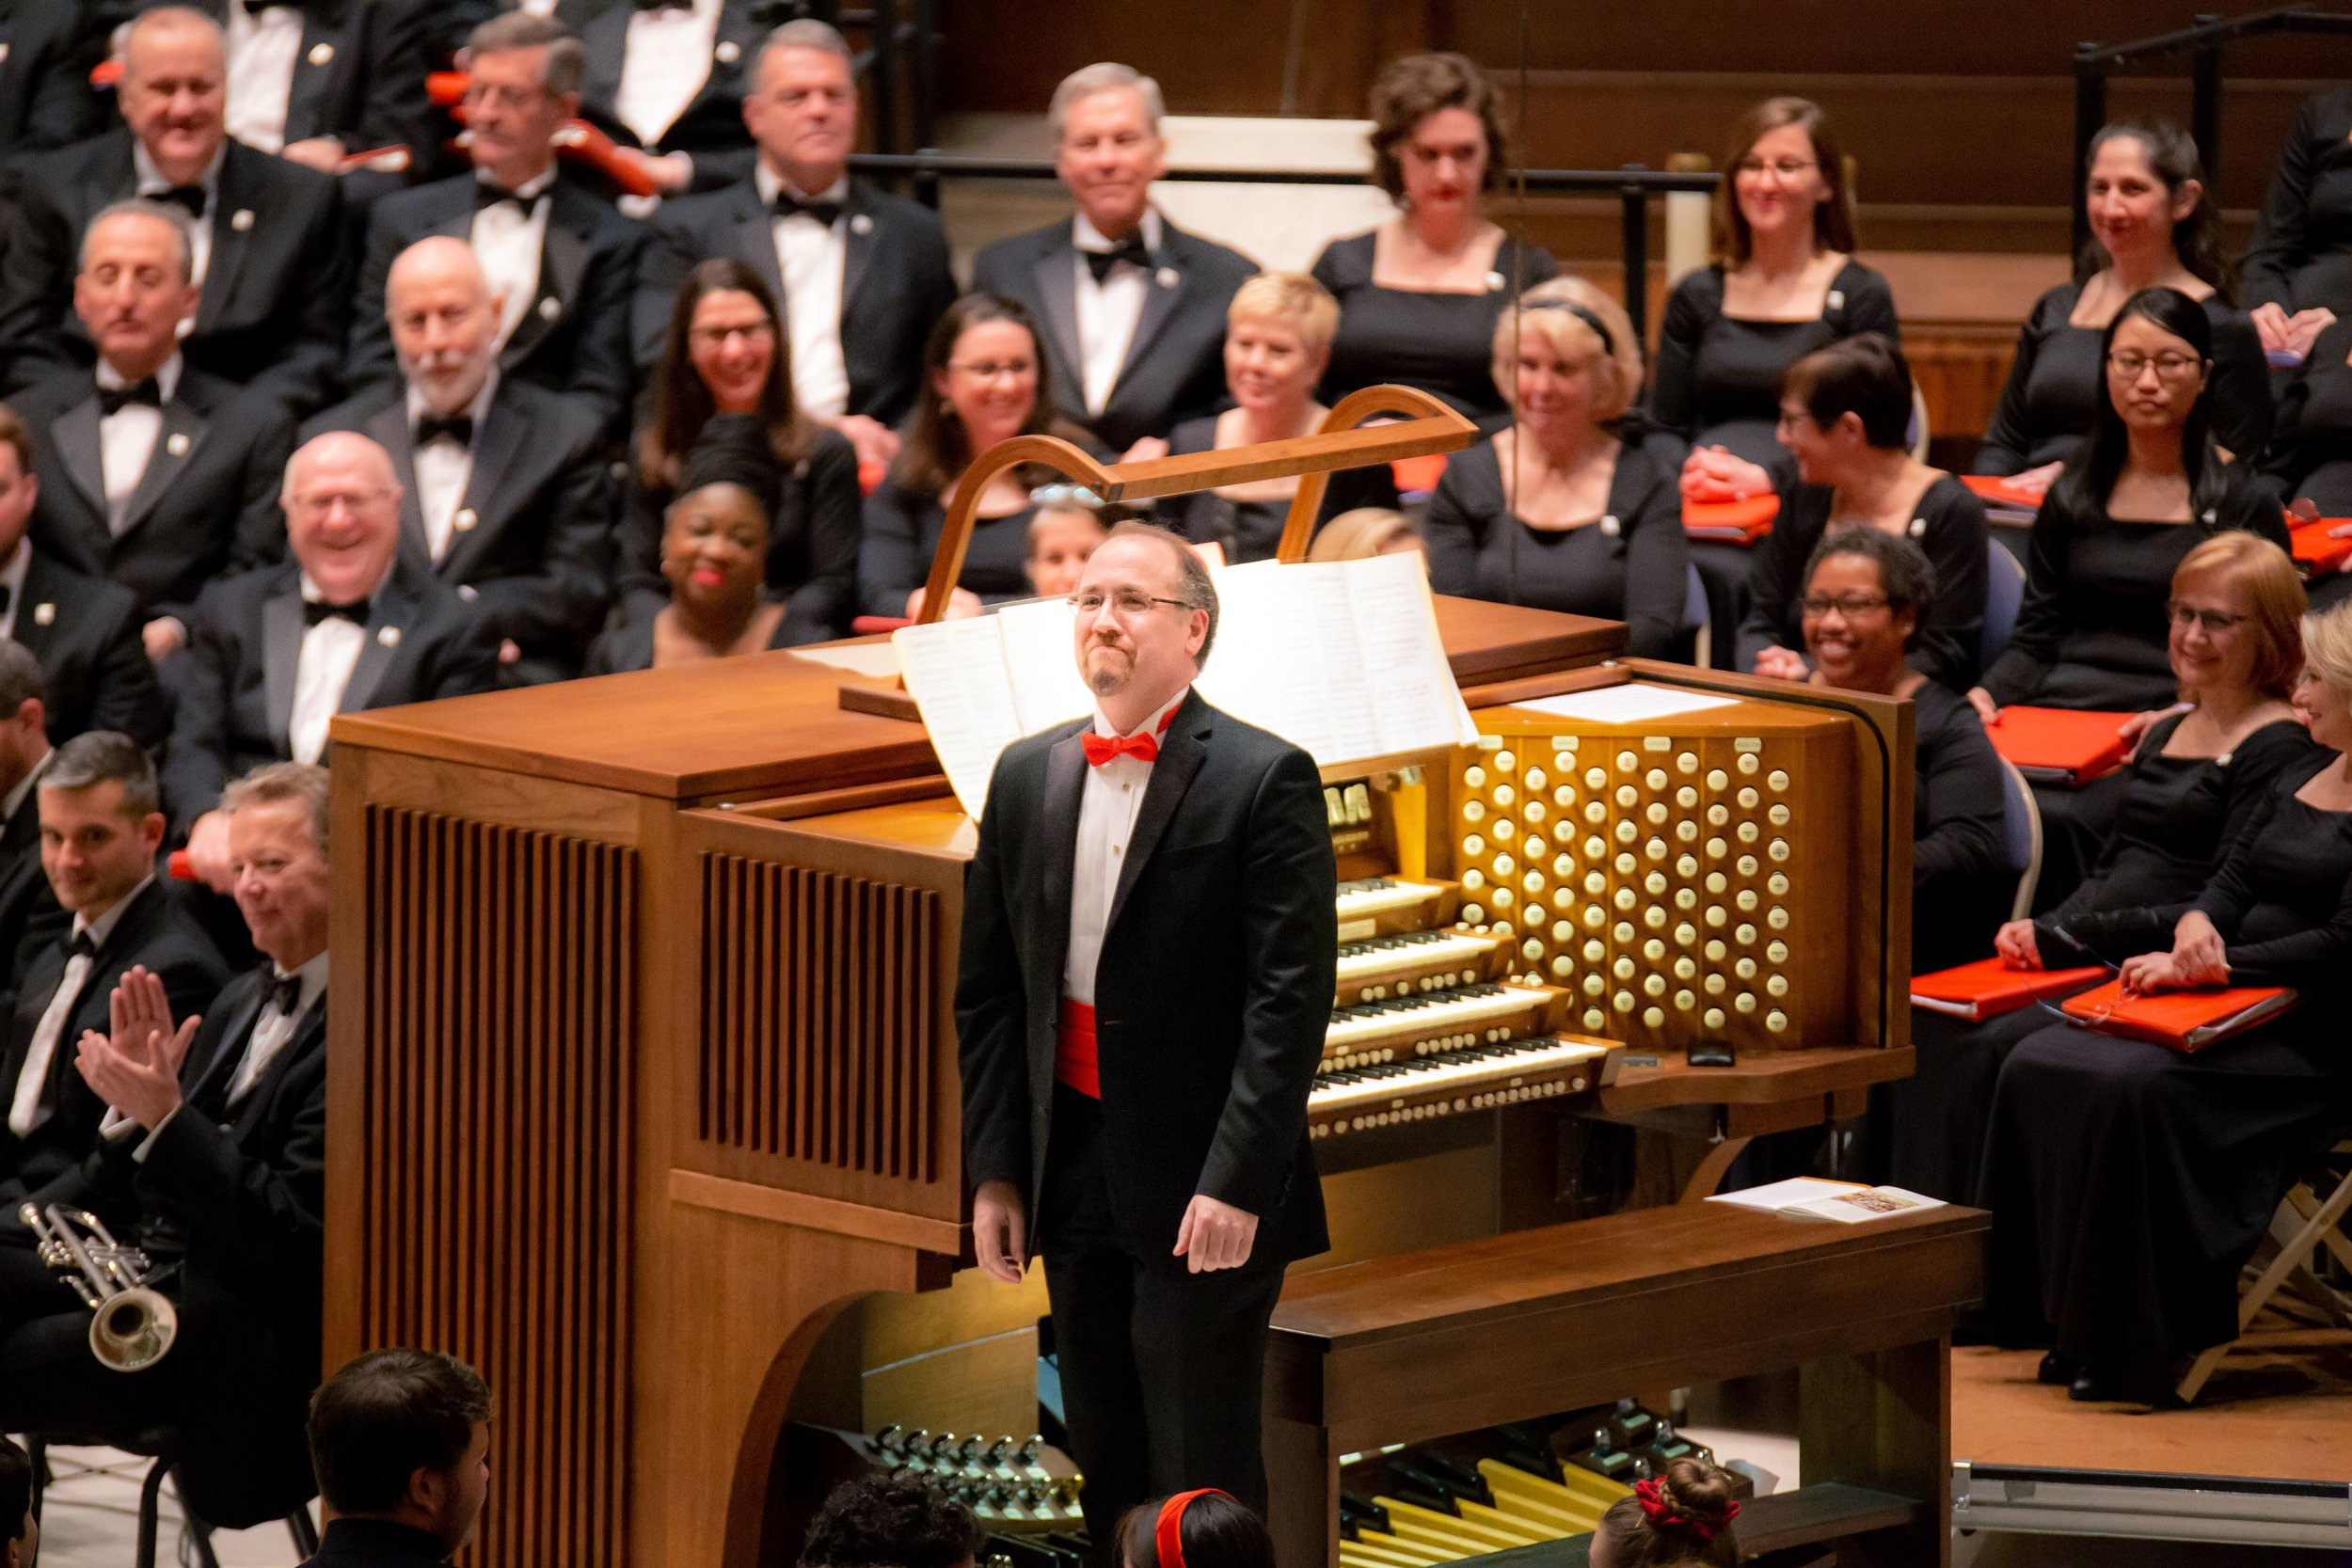 January 2019, organist Todd Fickley